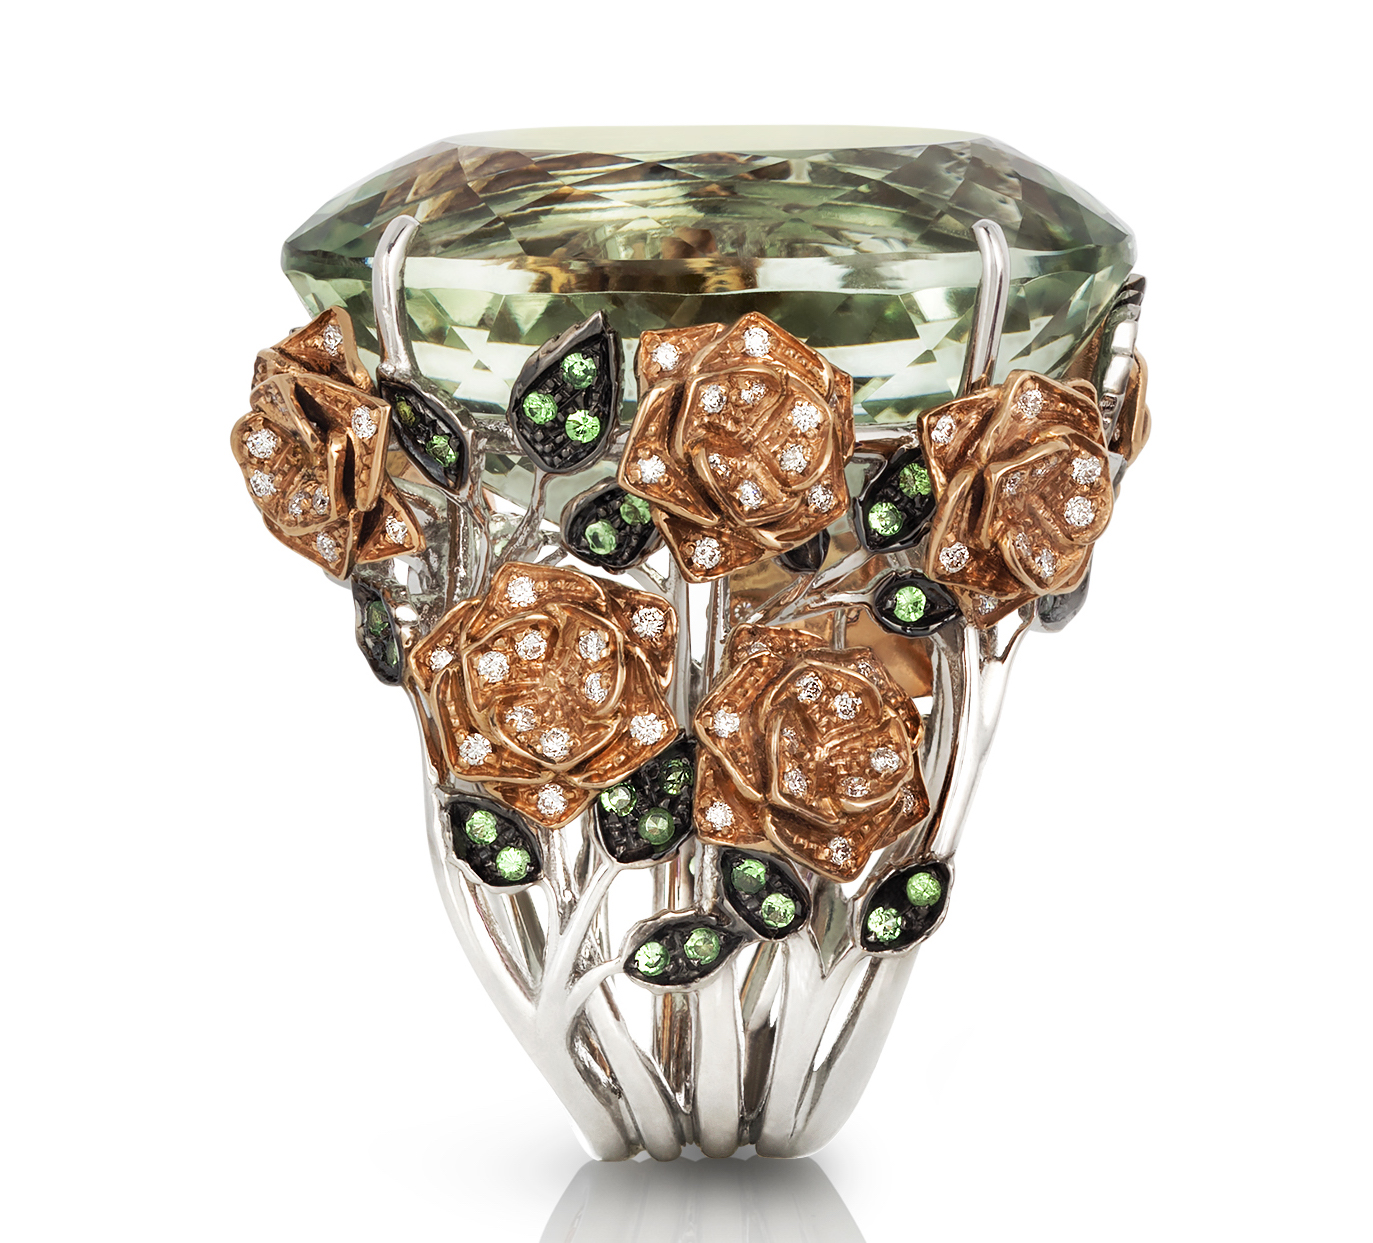 Roberto Coin Garden collection prasiolite ring | JCK On Your Market